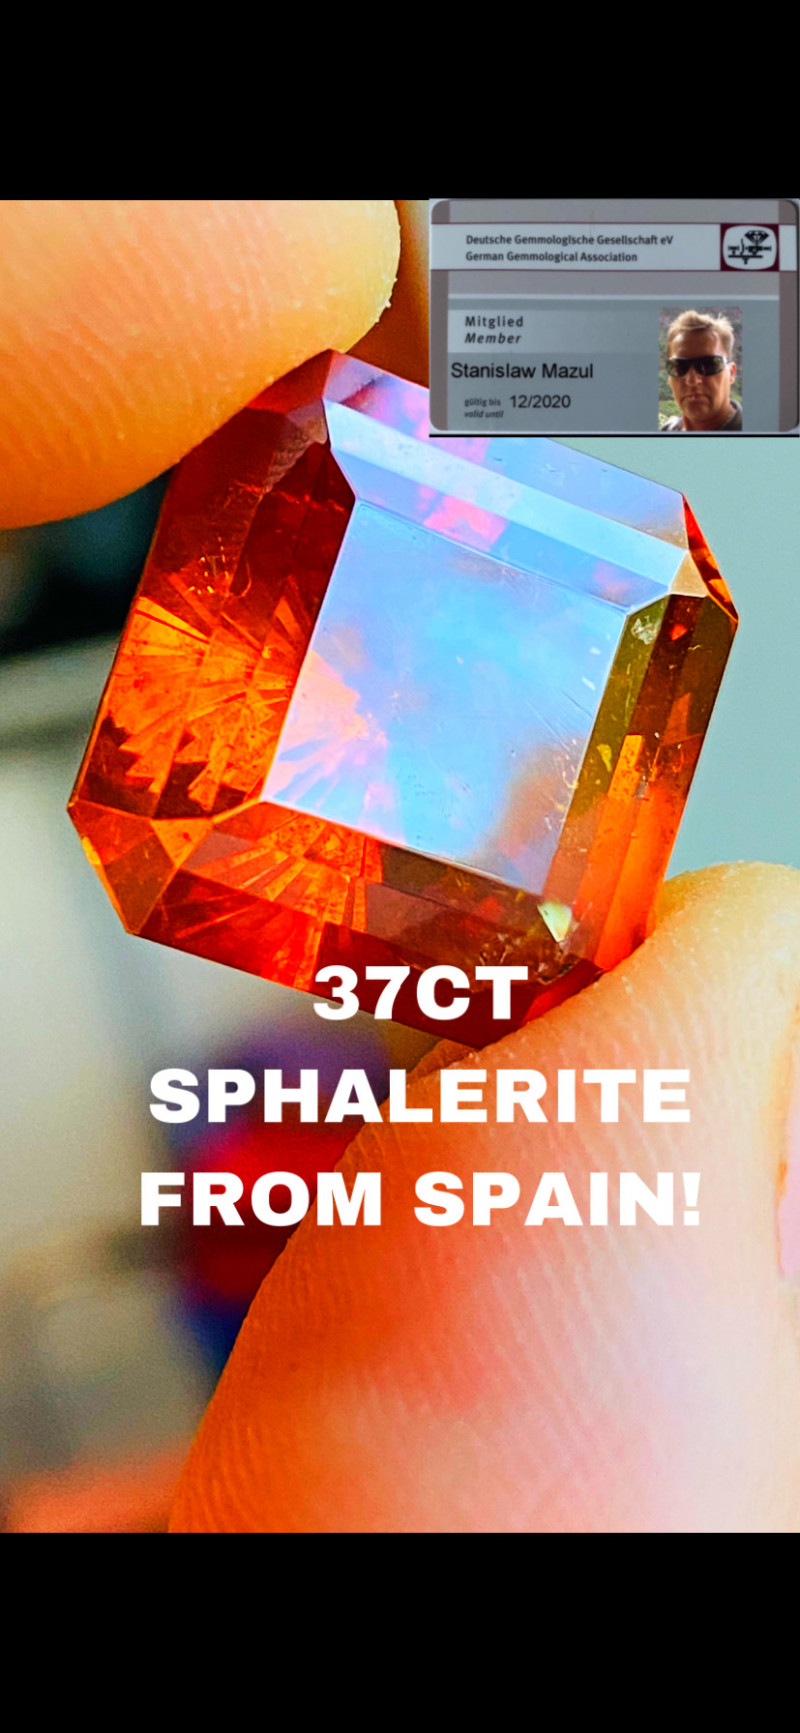 37.37SPHALERITE  FROM SPAIN - I DISCONNECT MY COLLECTION.  AFTER 36 YEARS!